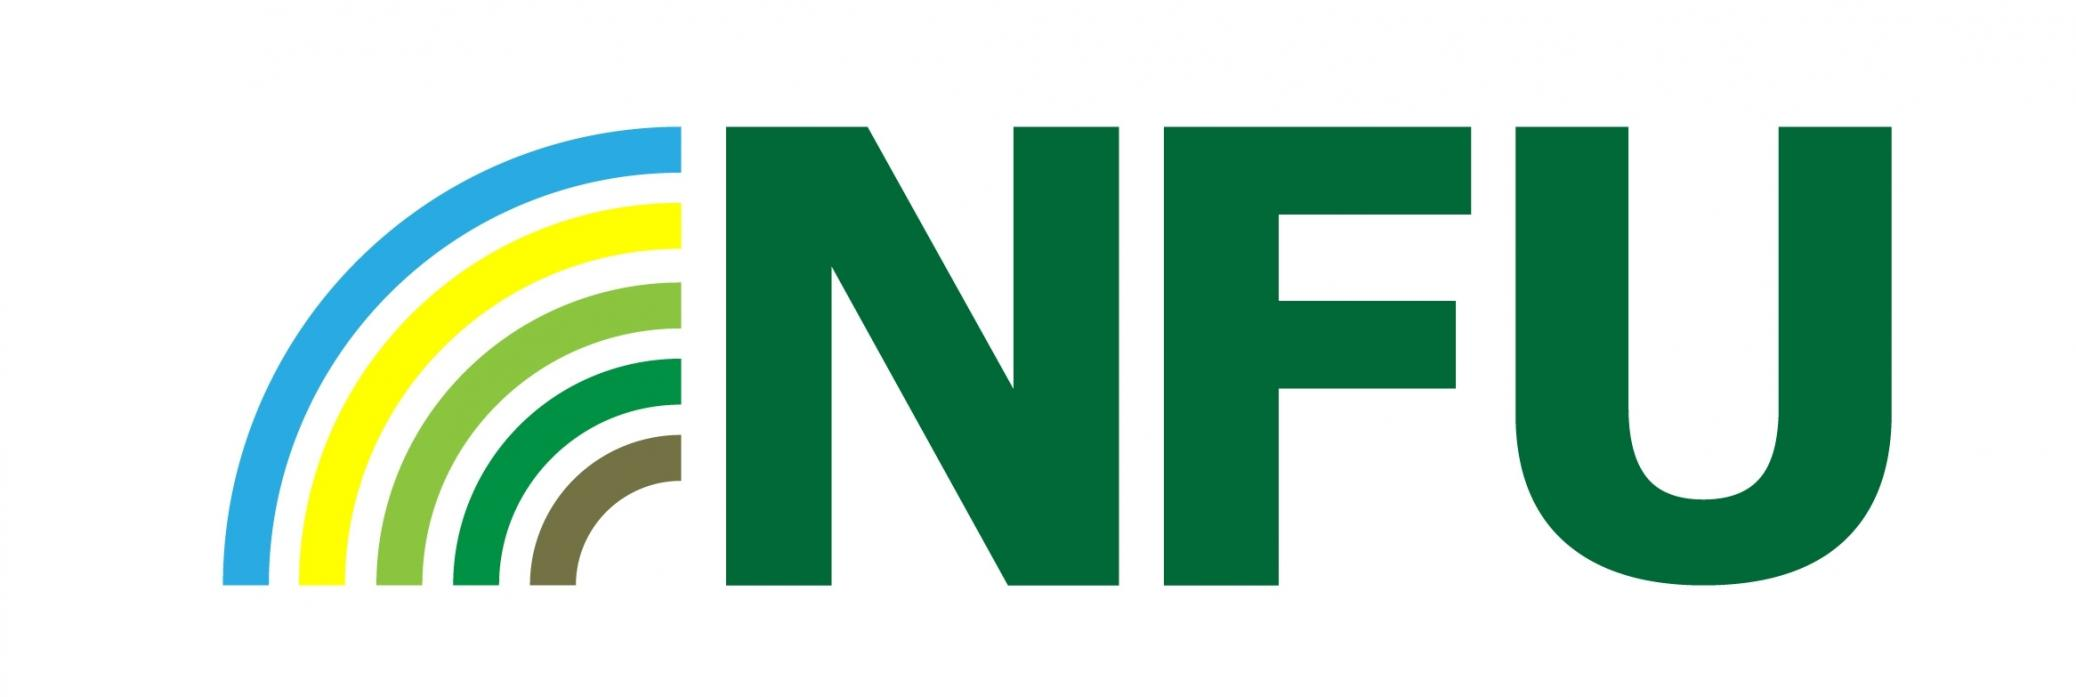 Any NFU members wishing to complete the survey should go to: NFUOnline.com/rural